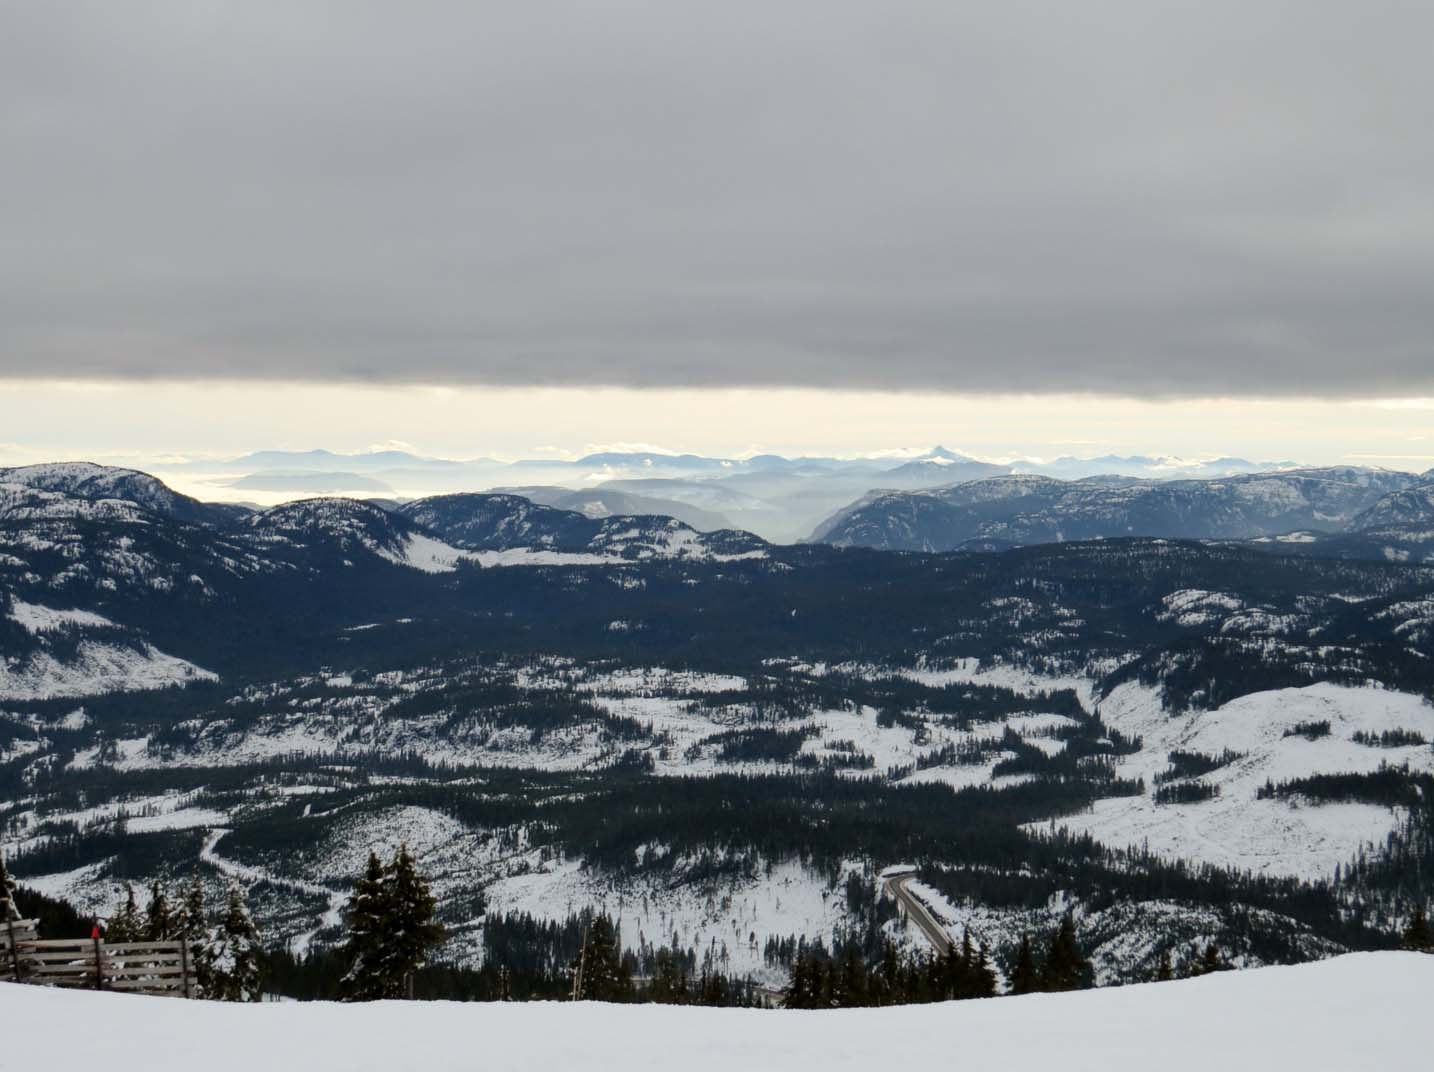 View from Mount Washington ski chairlift, Vancouver Island, Canada